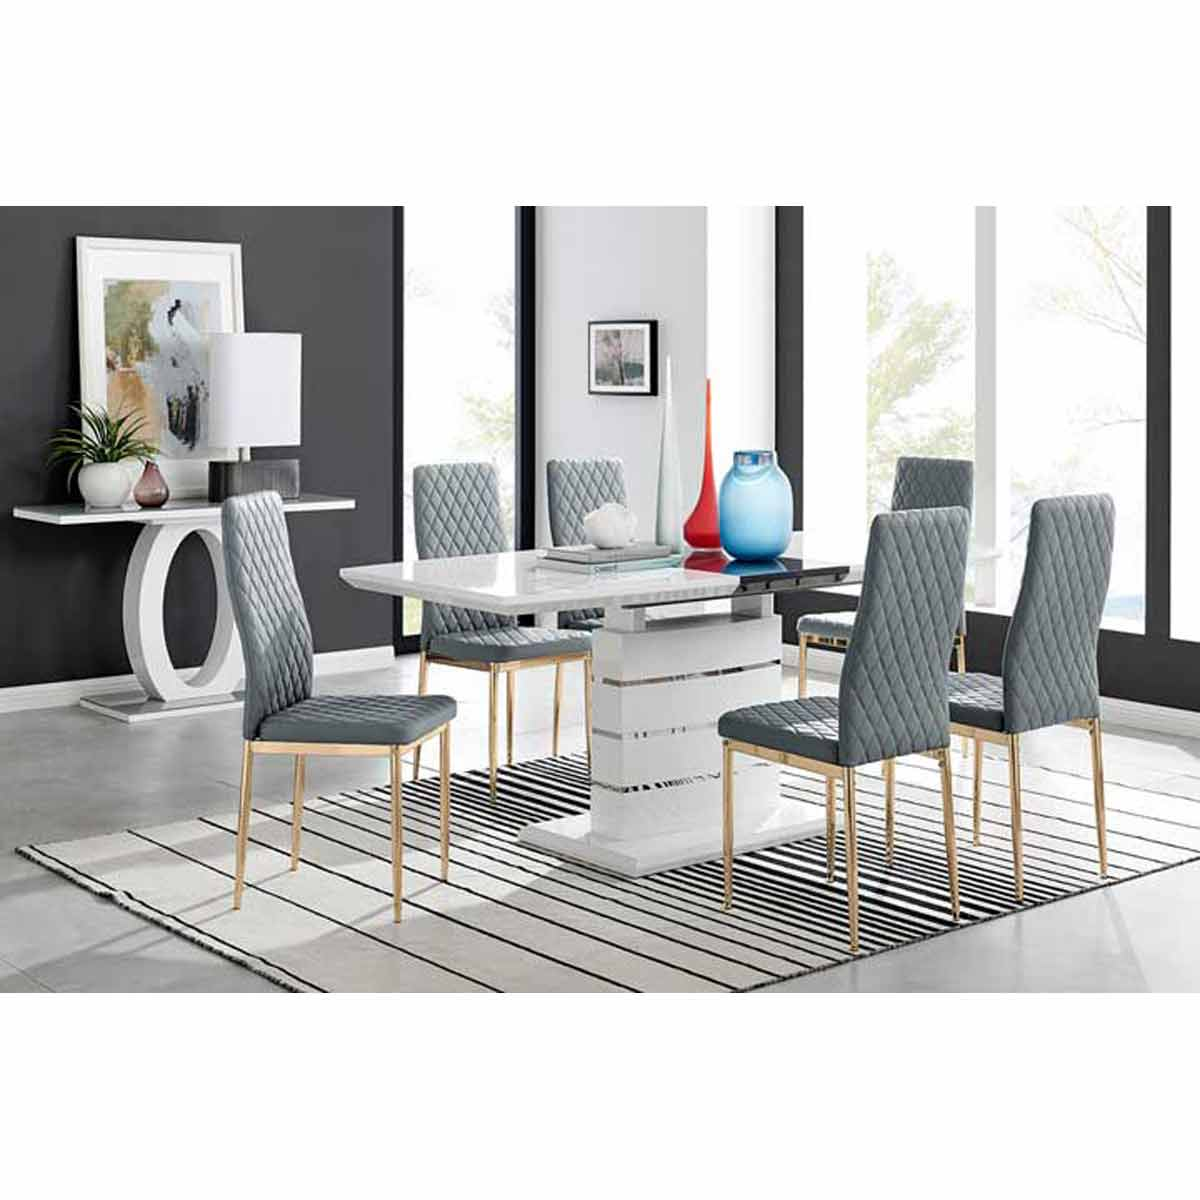 Furniture Box Renato High Gloss Extending Dining Table and 6 Grey Gold Leg Milan Chairs